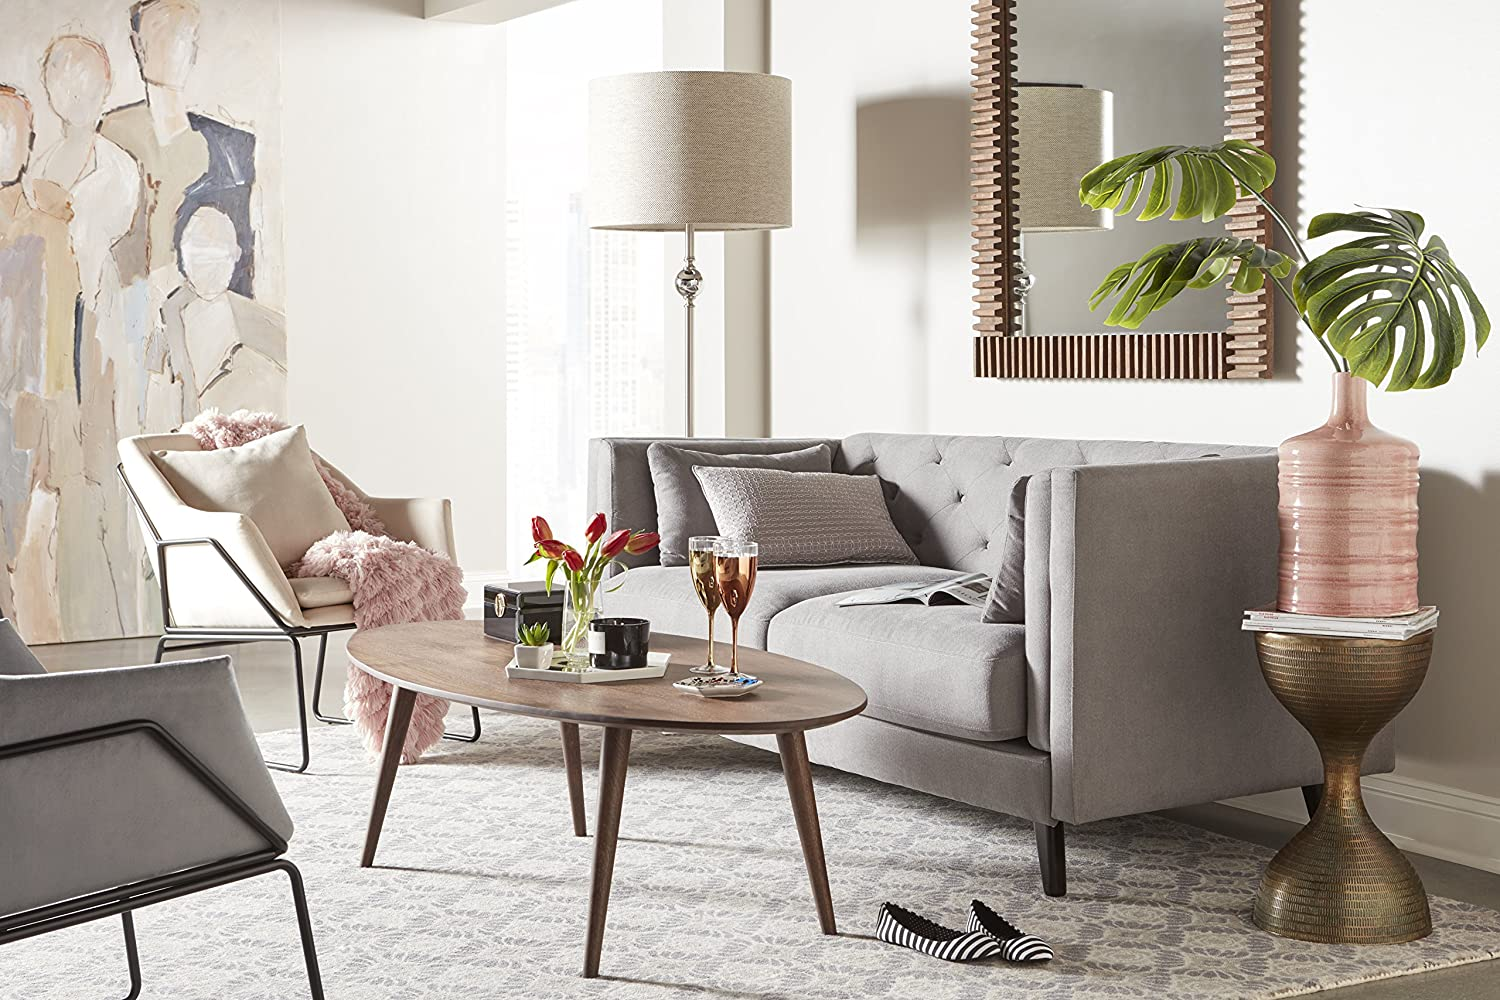 Elle Decor Living Room. Free Image Credit William Abranowicz For ...